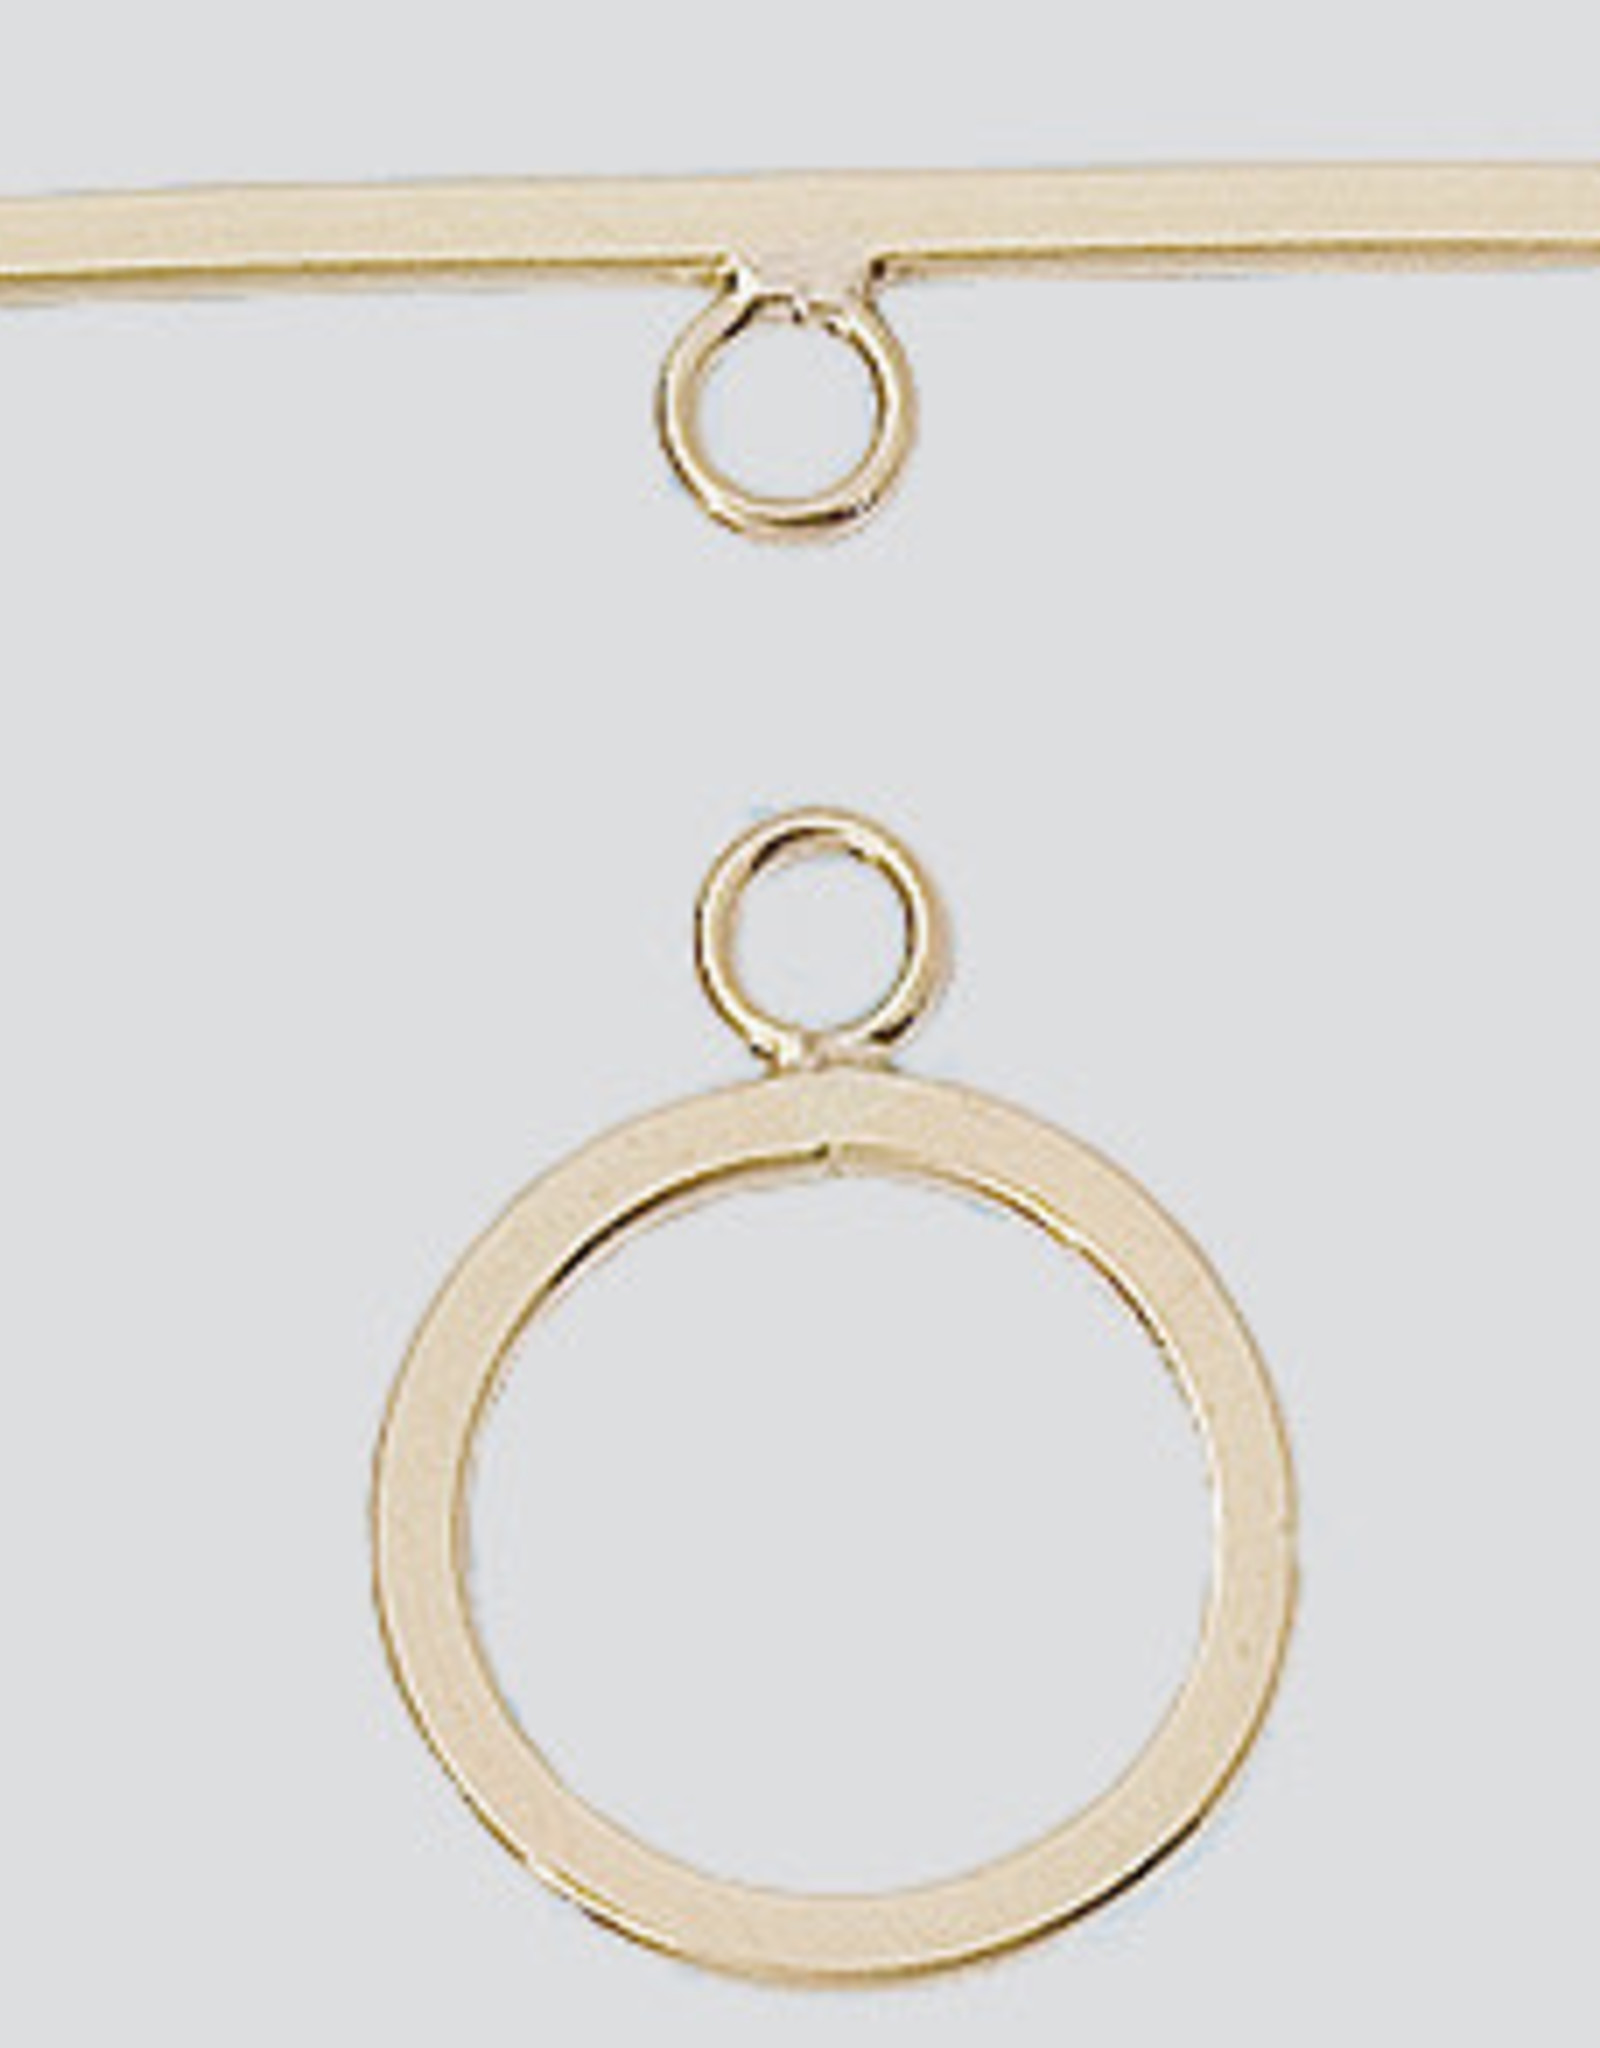 14.5mm Toggle Clasp 14k Gold Filled ea